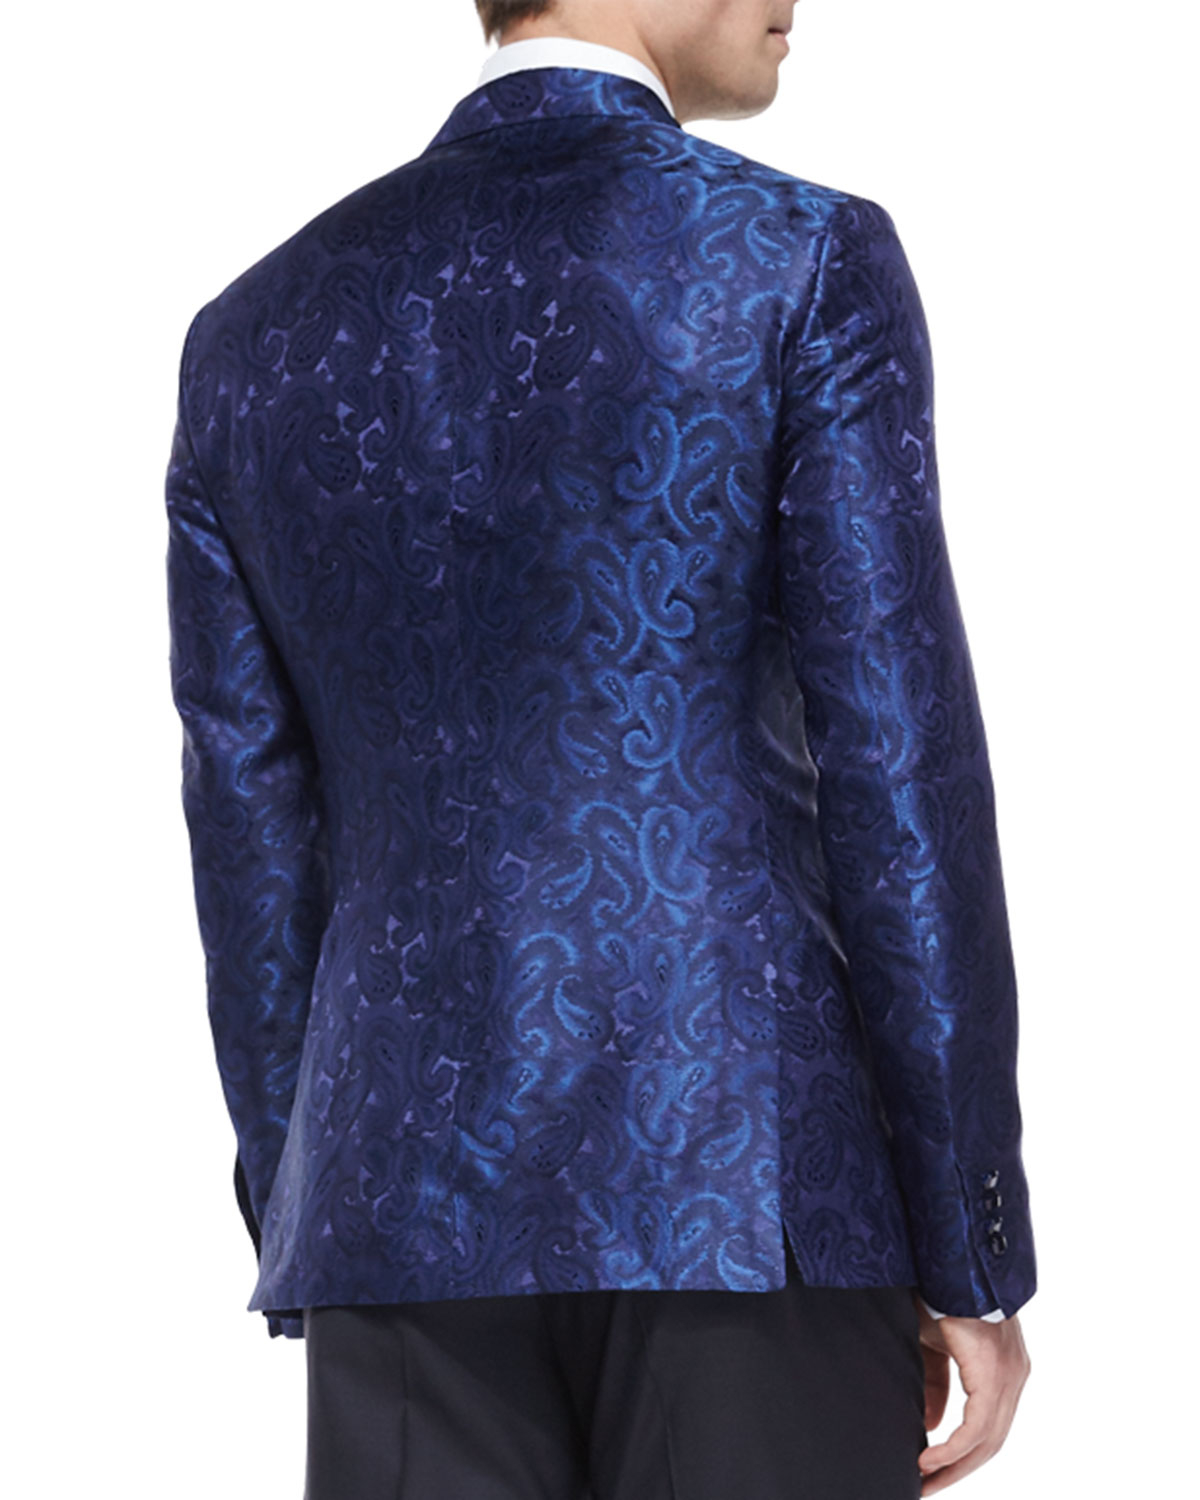 Lyst Etro Paisley Jacquard Evening Jacket In Blue For Men